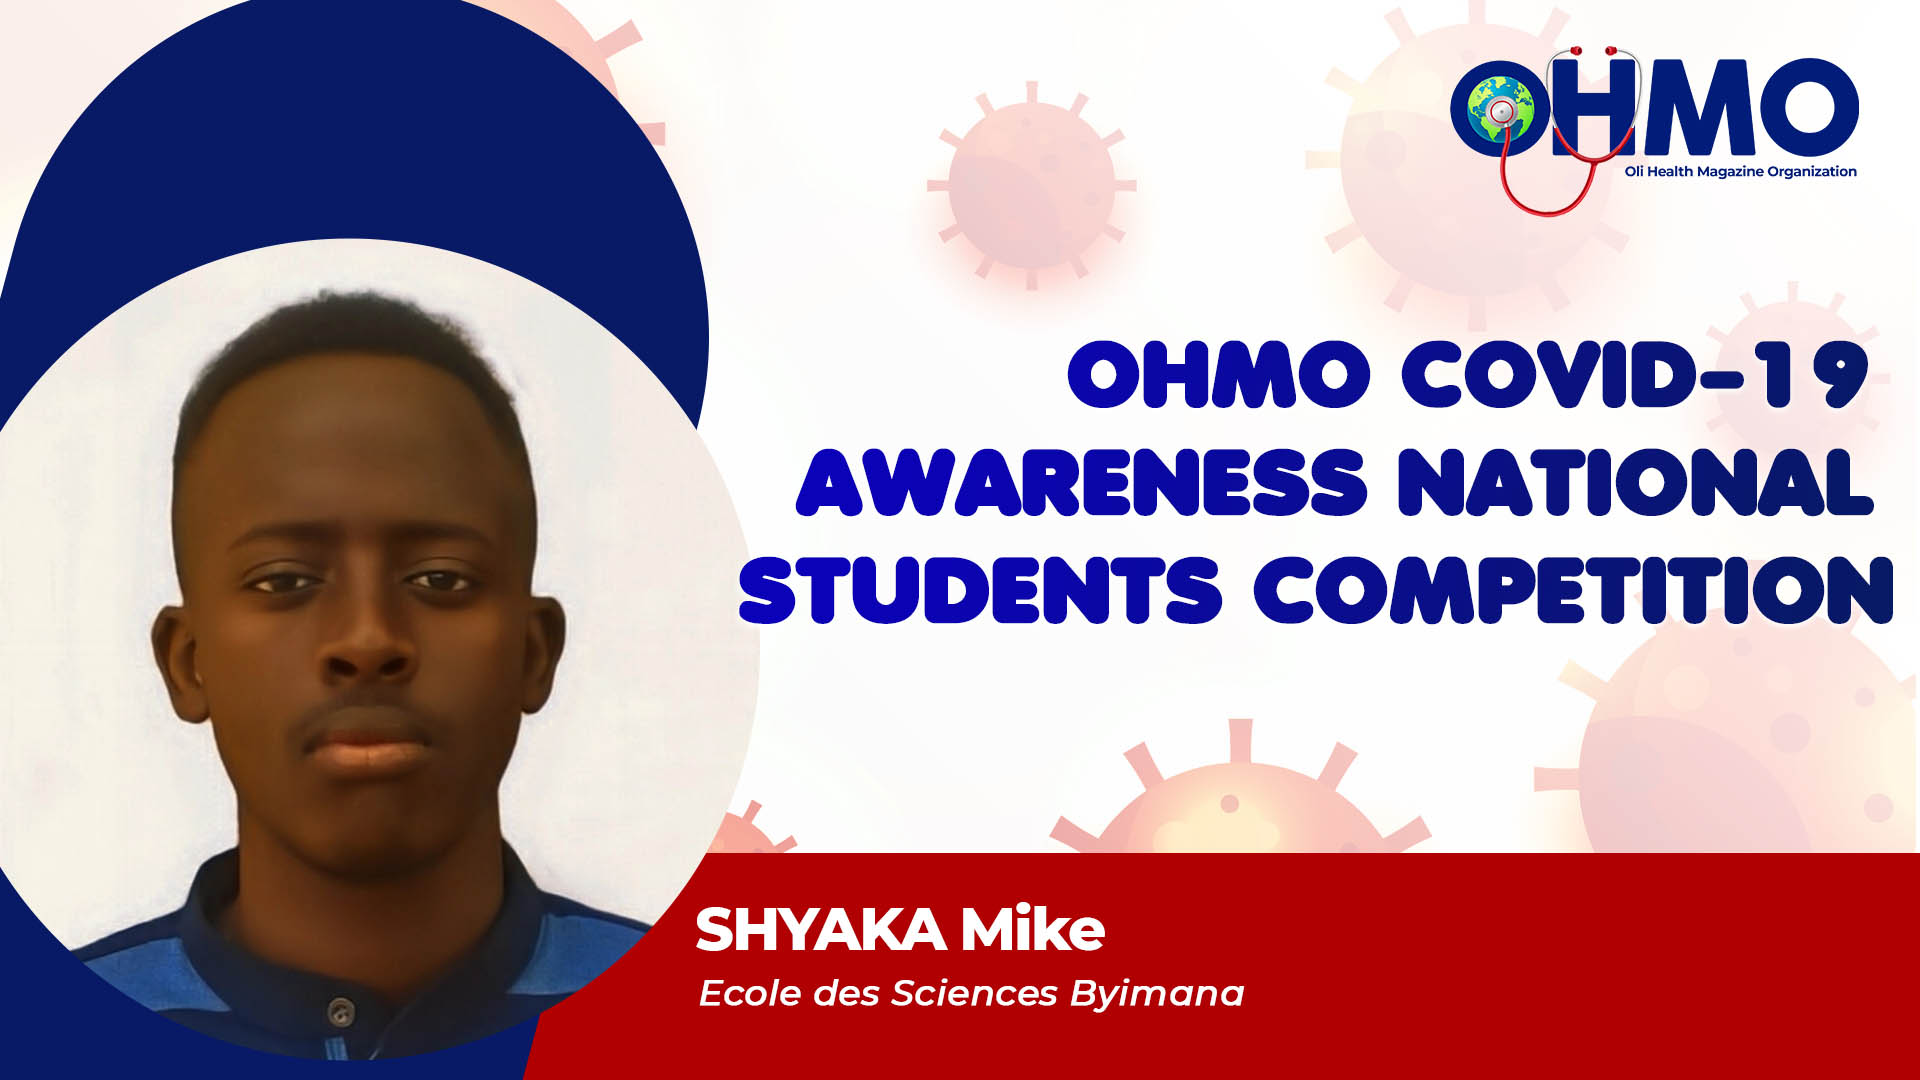 Coronavirus Global Awareness Project in Rwanda - SHYAKA Mike from Ecole des Sciences Byimana (ENTRY 58)